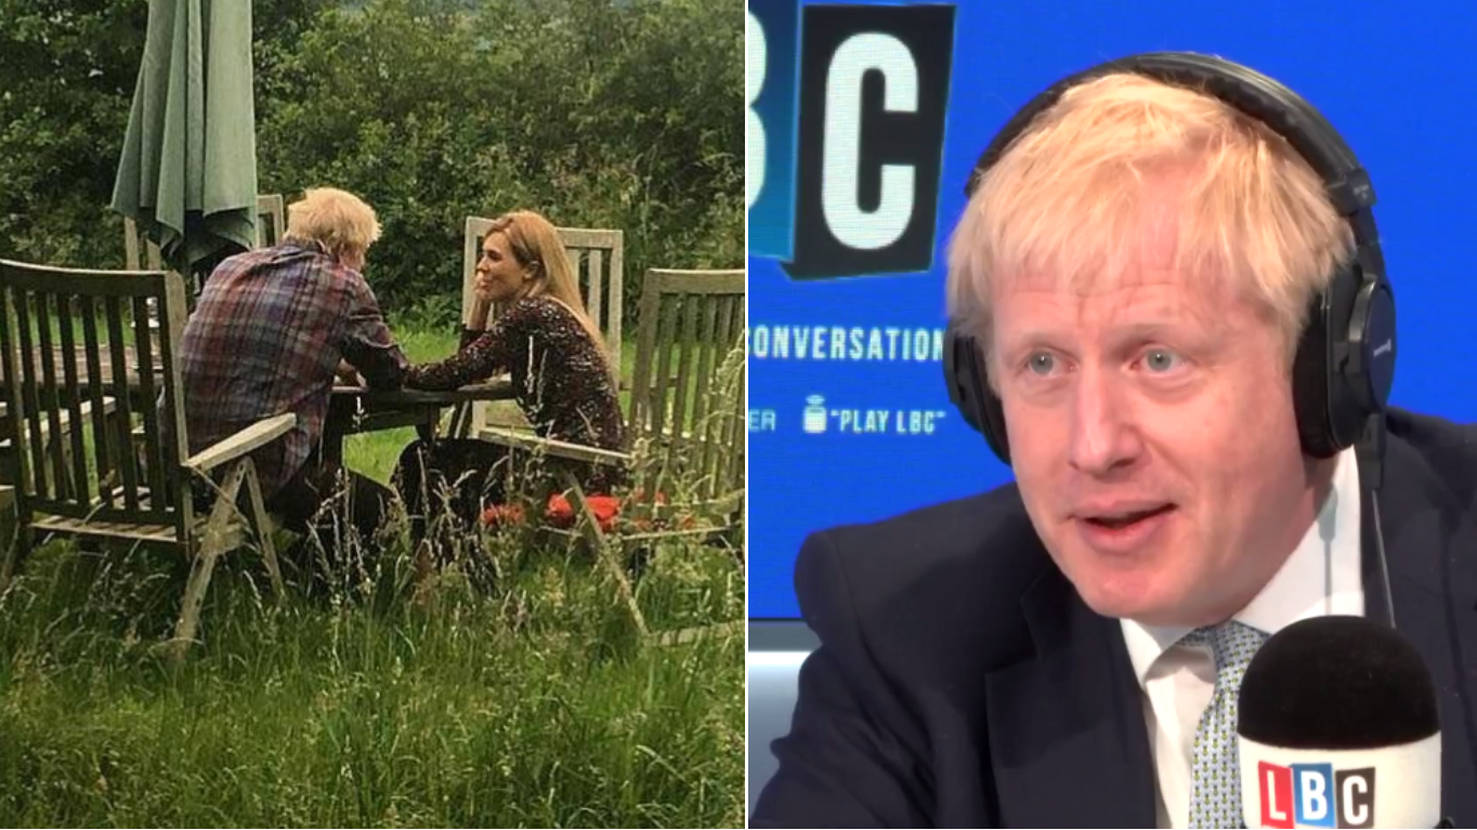 Boris Johnson Refuses To Answer Question About Couple Picture 26 TIMES